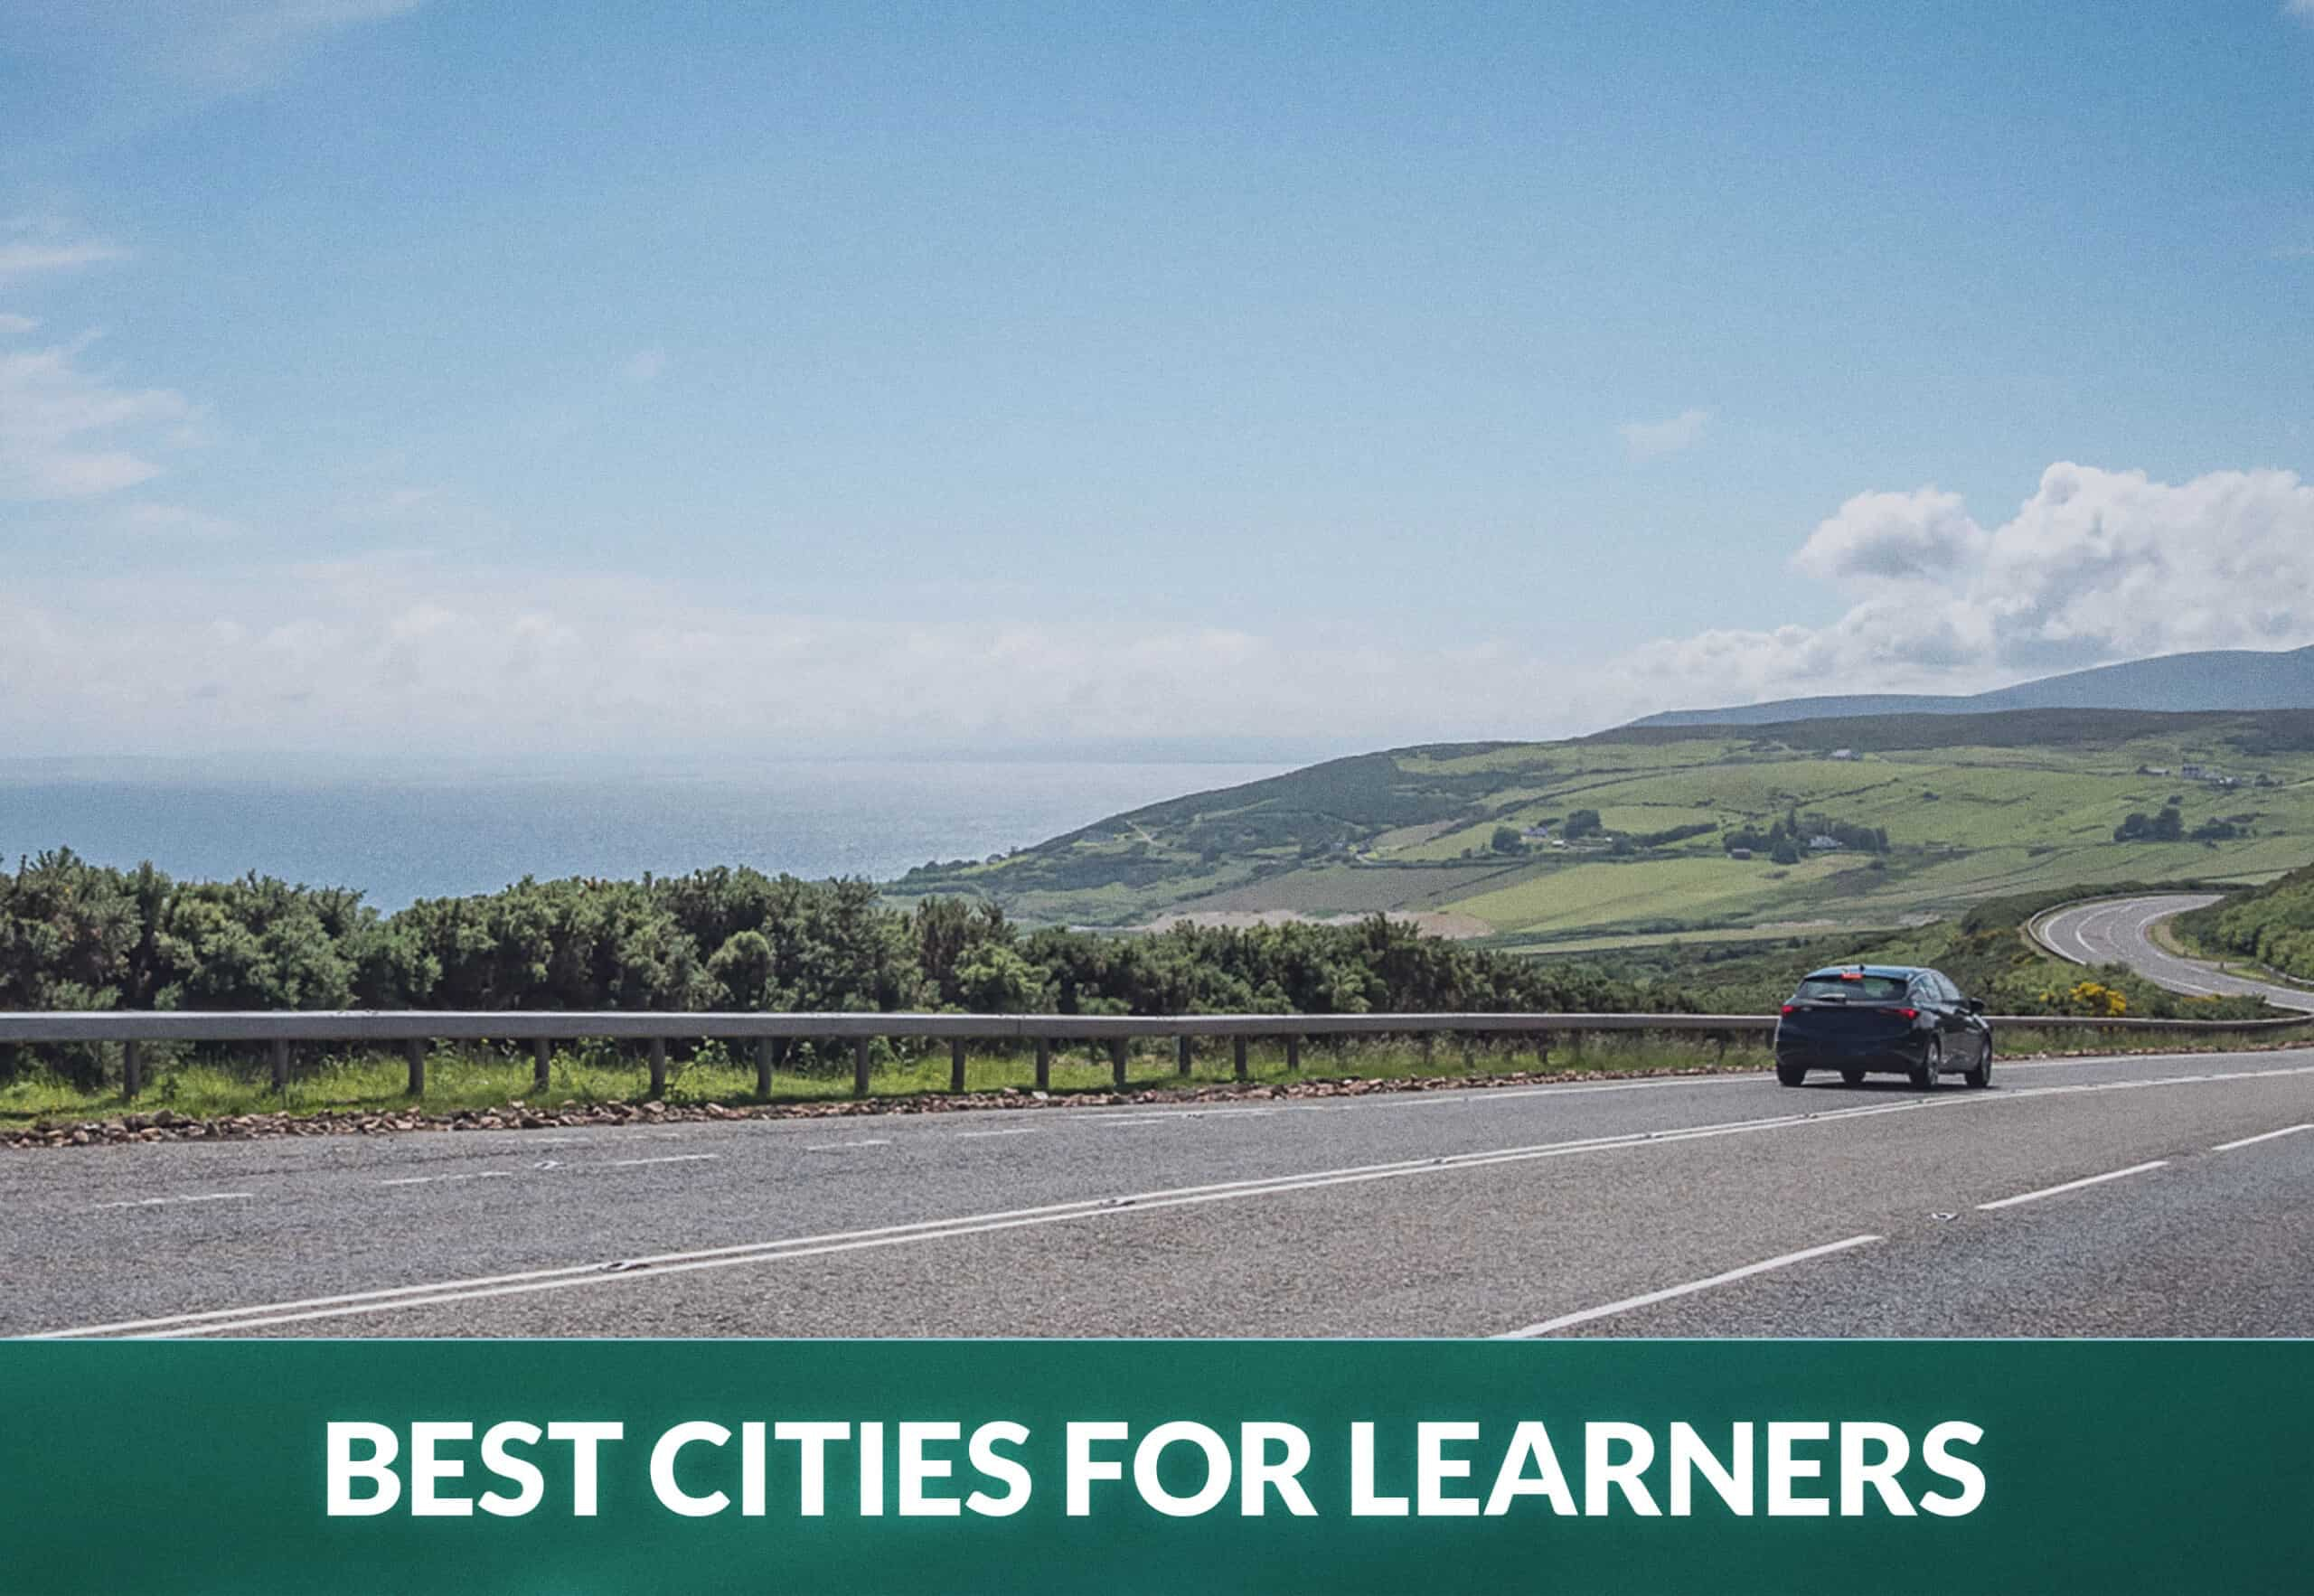 BEST CITIES FOR LEARNERS